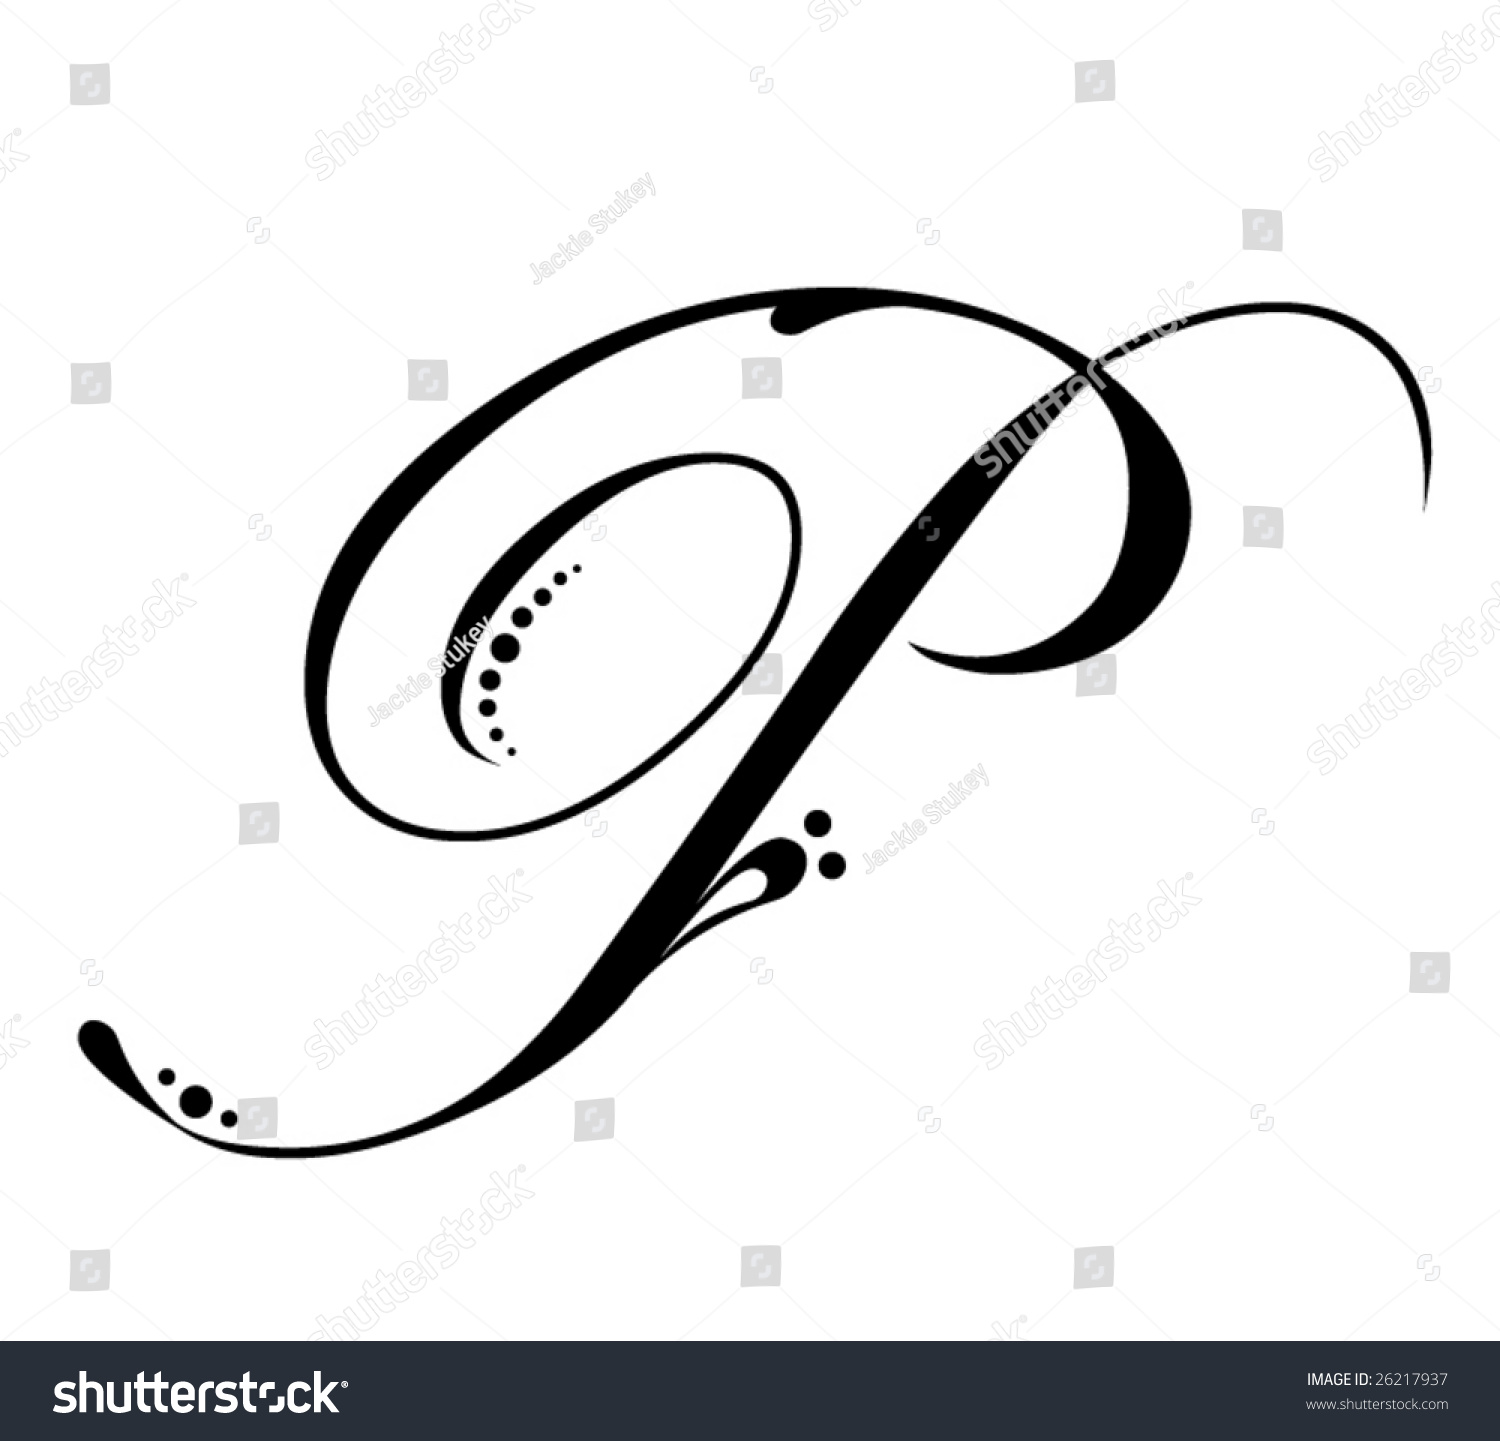 Worksheet P Cursive the letter p in cursive scalien